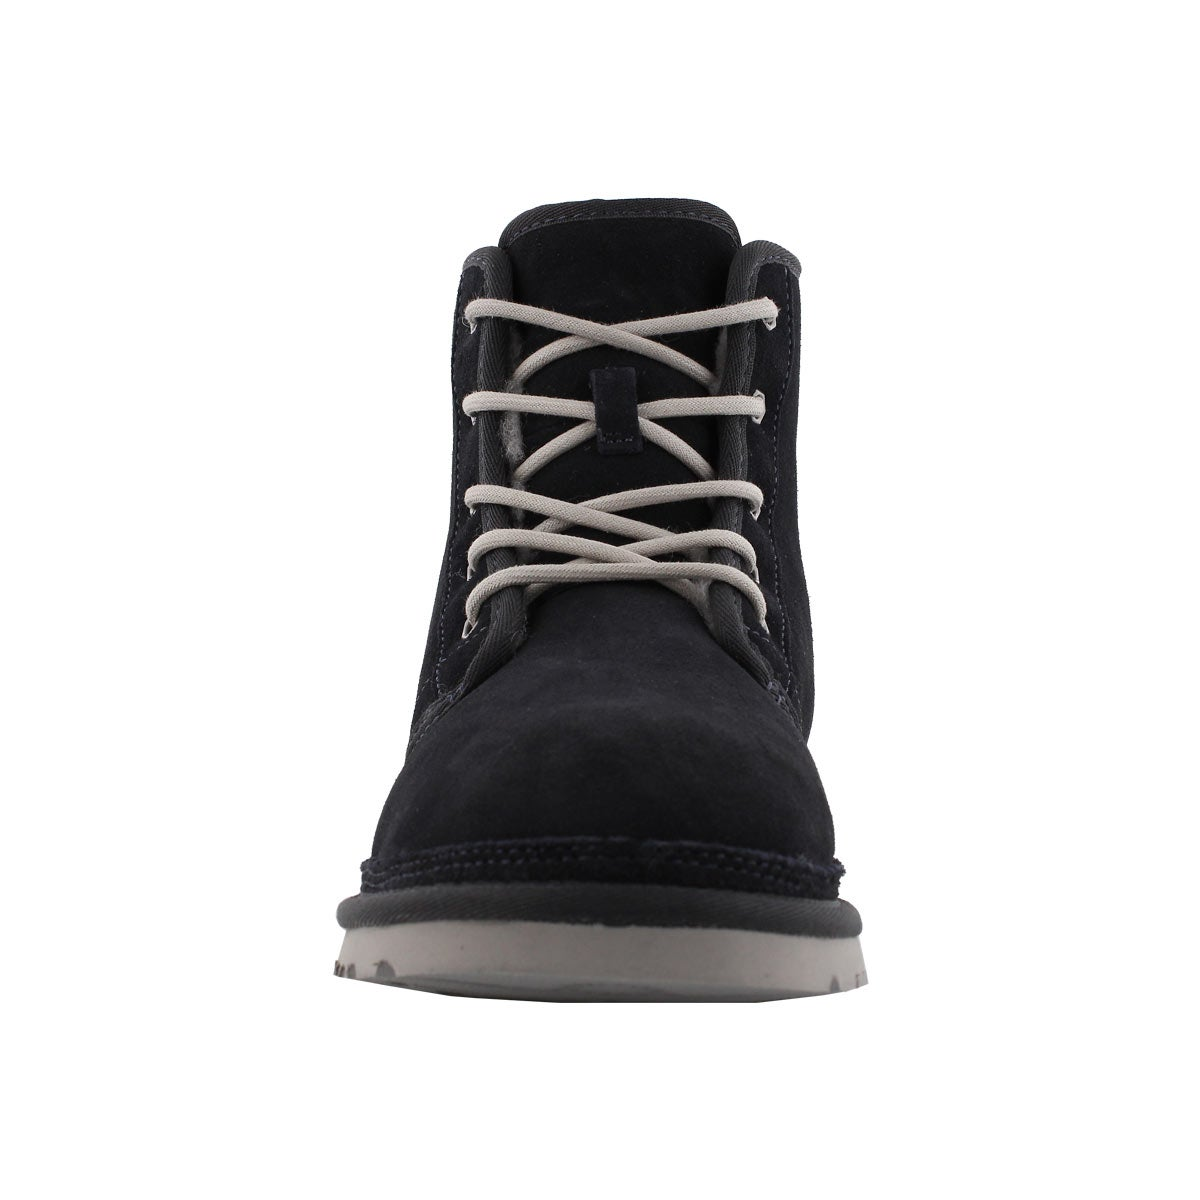 Mns Harkley tru navy lace up ankle boot